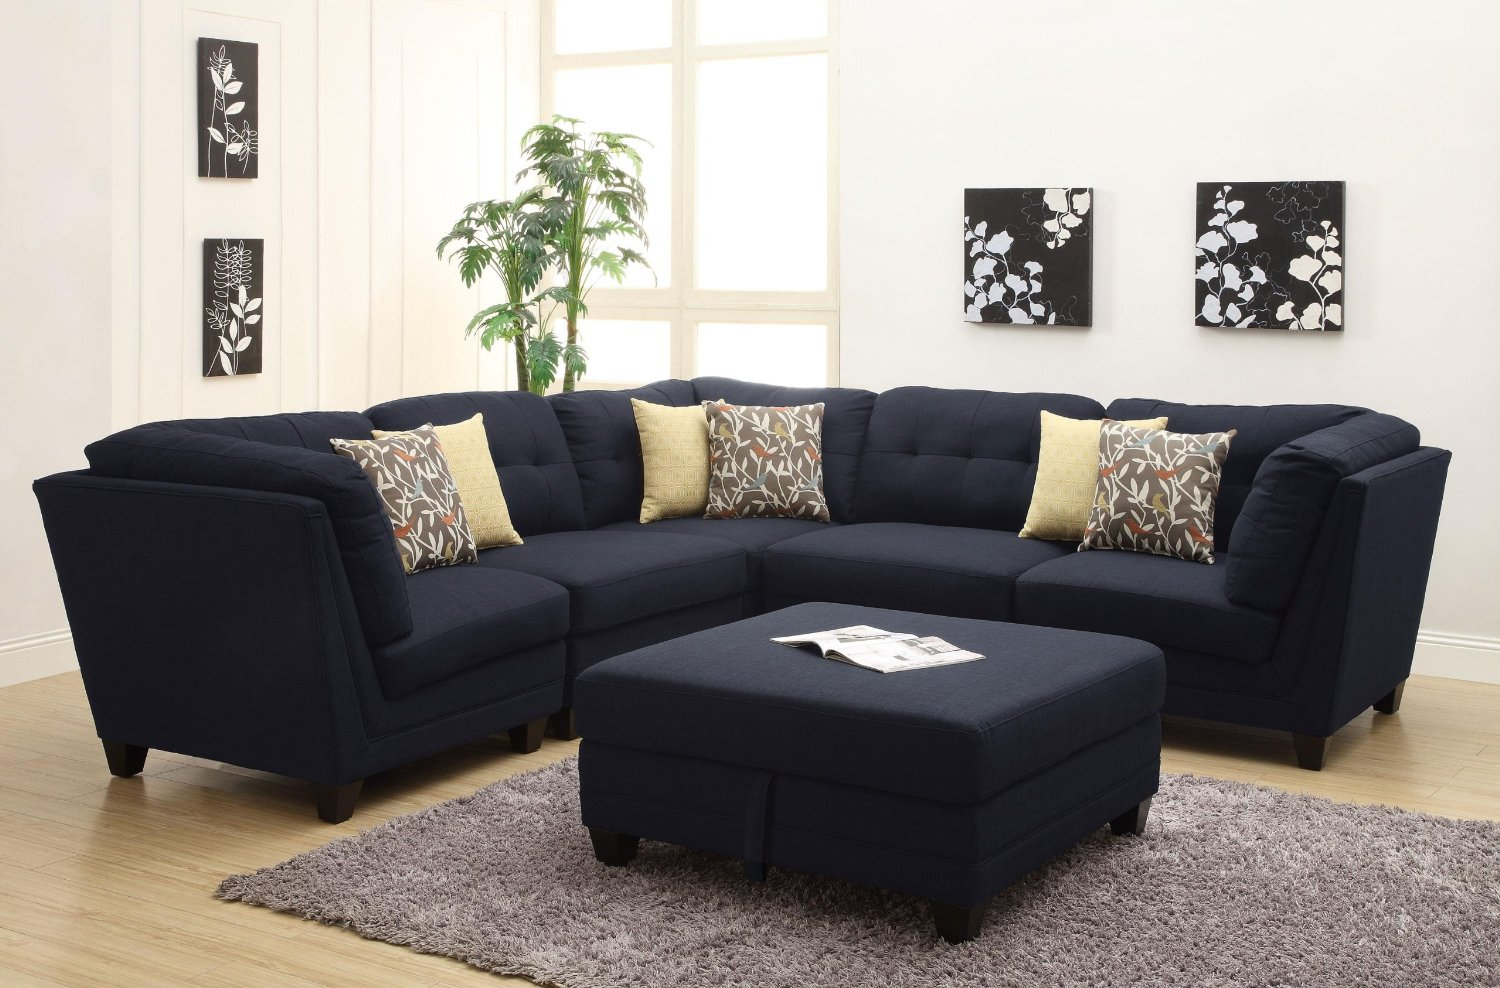 Comfortable Chaise Sofa Most Comfortable Sofas Homesfeed